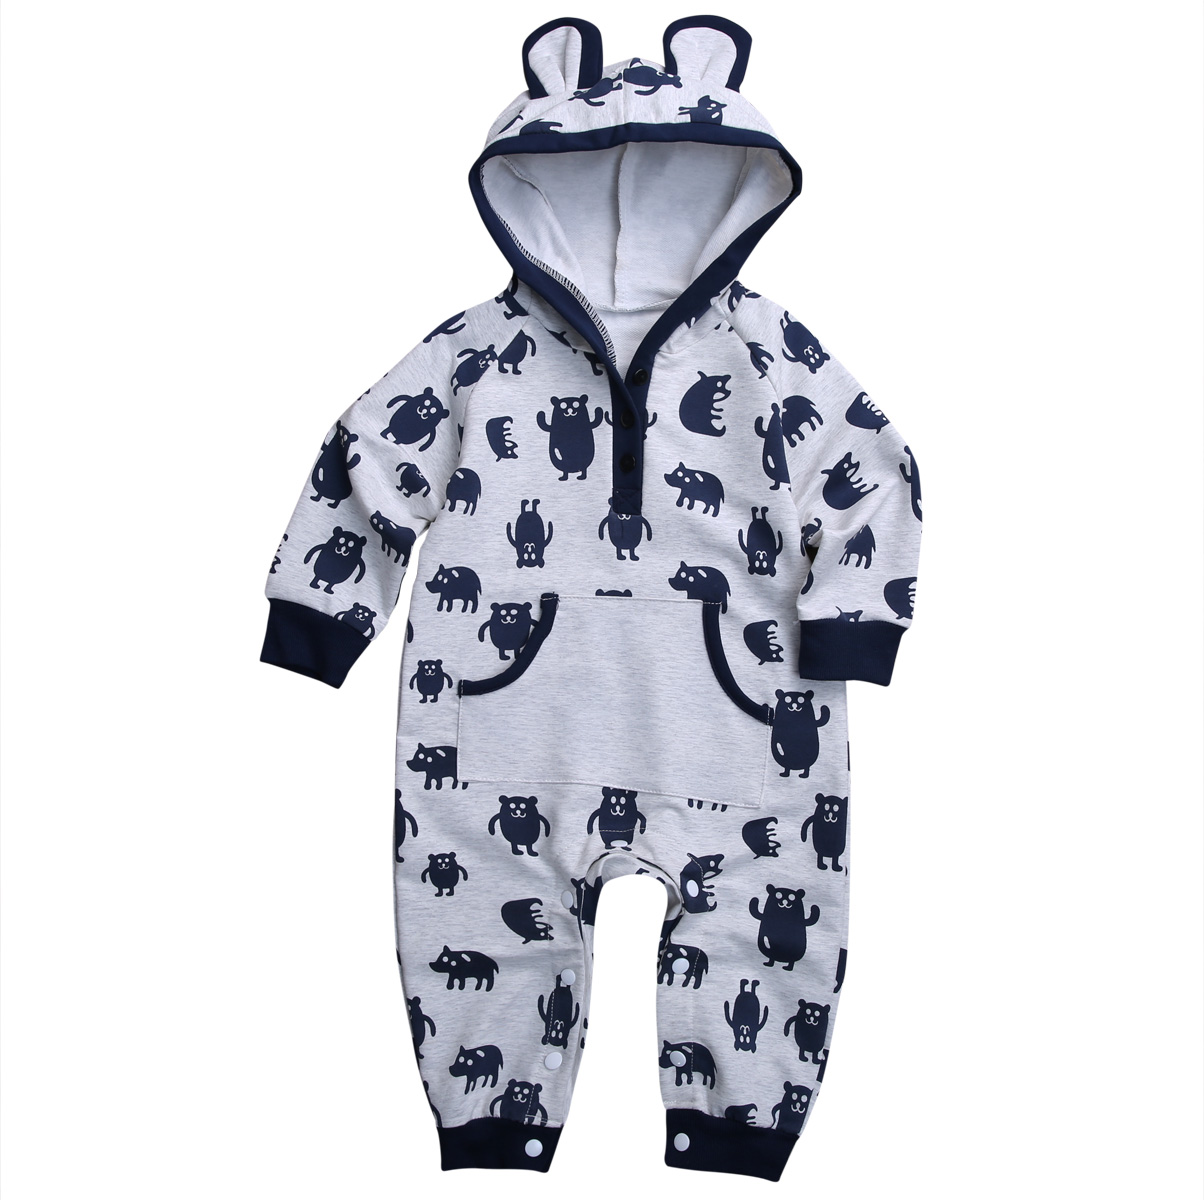 Newborn Infant Baby Boy Girl Kids Winter Clothes Cotton Warm Bear Long Romper Jumpsuit Outfit newborn infant baby girl clothes strap lace floral romper jumpsuit outfit summer cotton backless one pieces outfit baby onesie